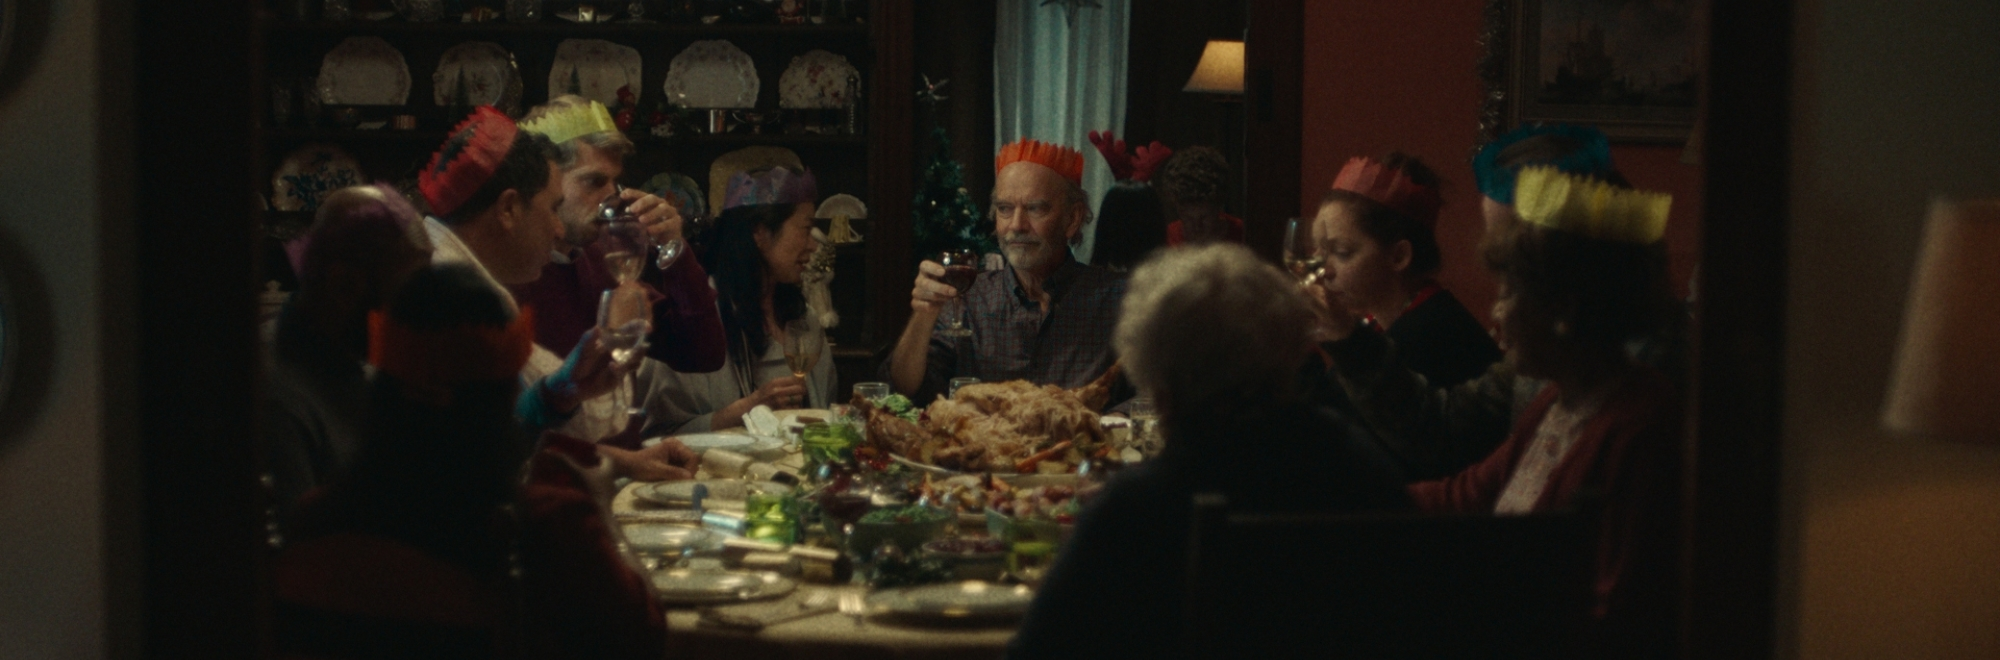 Creative Moment talks to Toby Allen, deputy ECD at AMVBBDO, about the creation of kitchen towel brand Plenty's Christmas ad